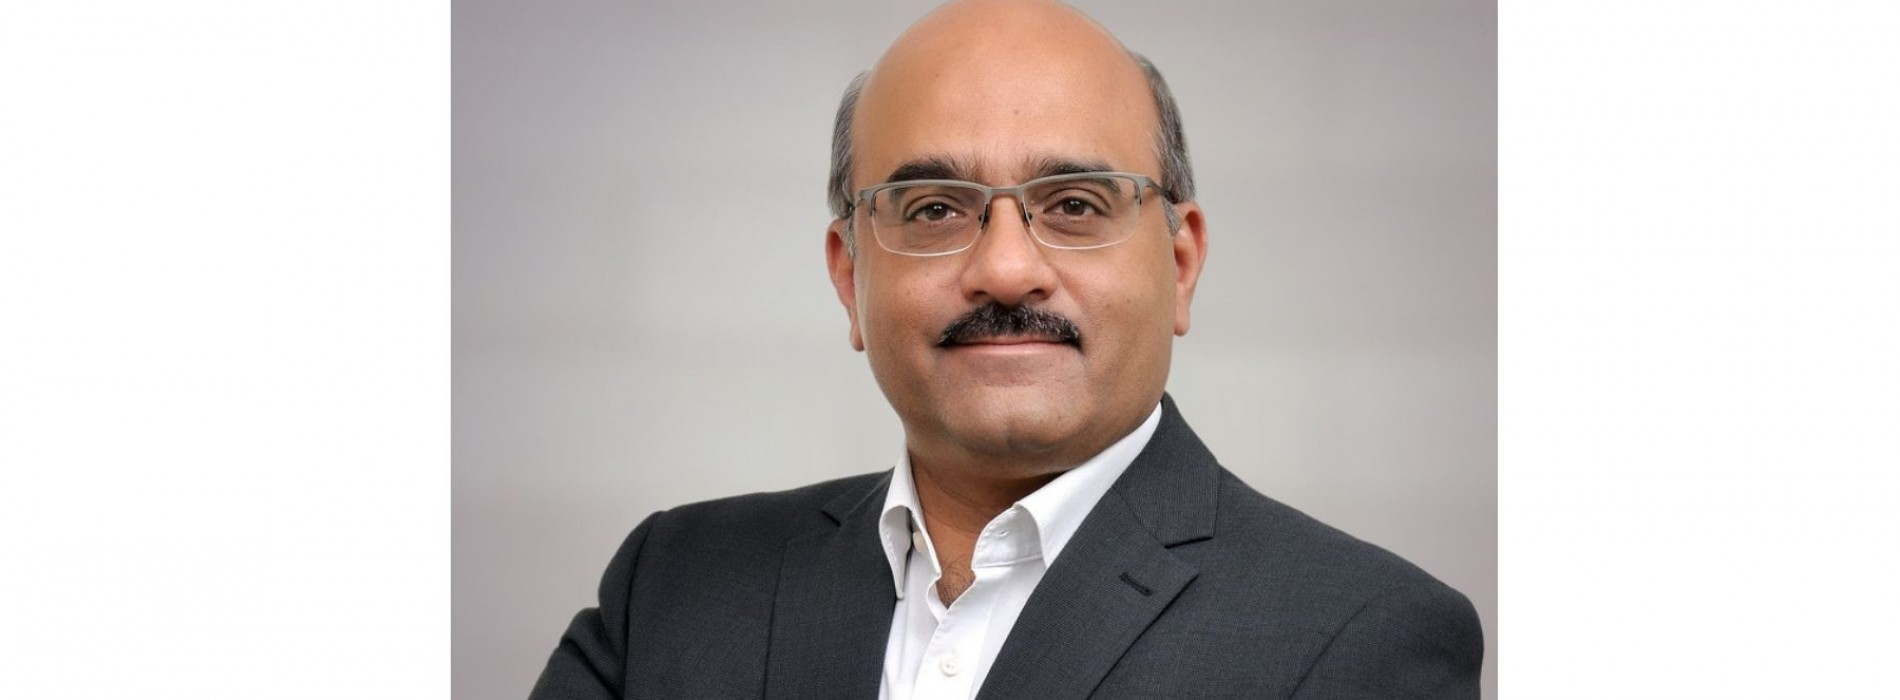 Abinash Manghani is the new CEO of WelcomHeritage